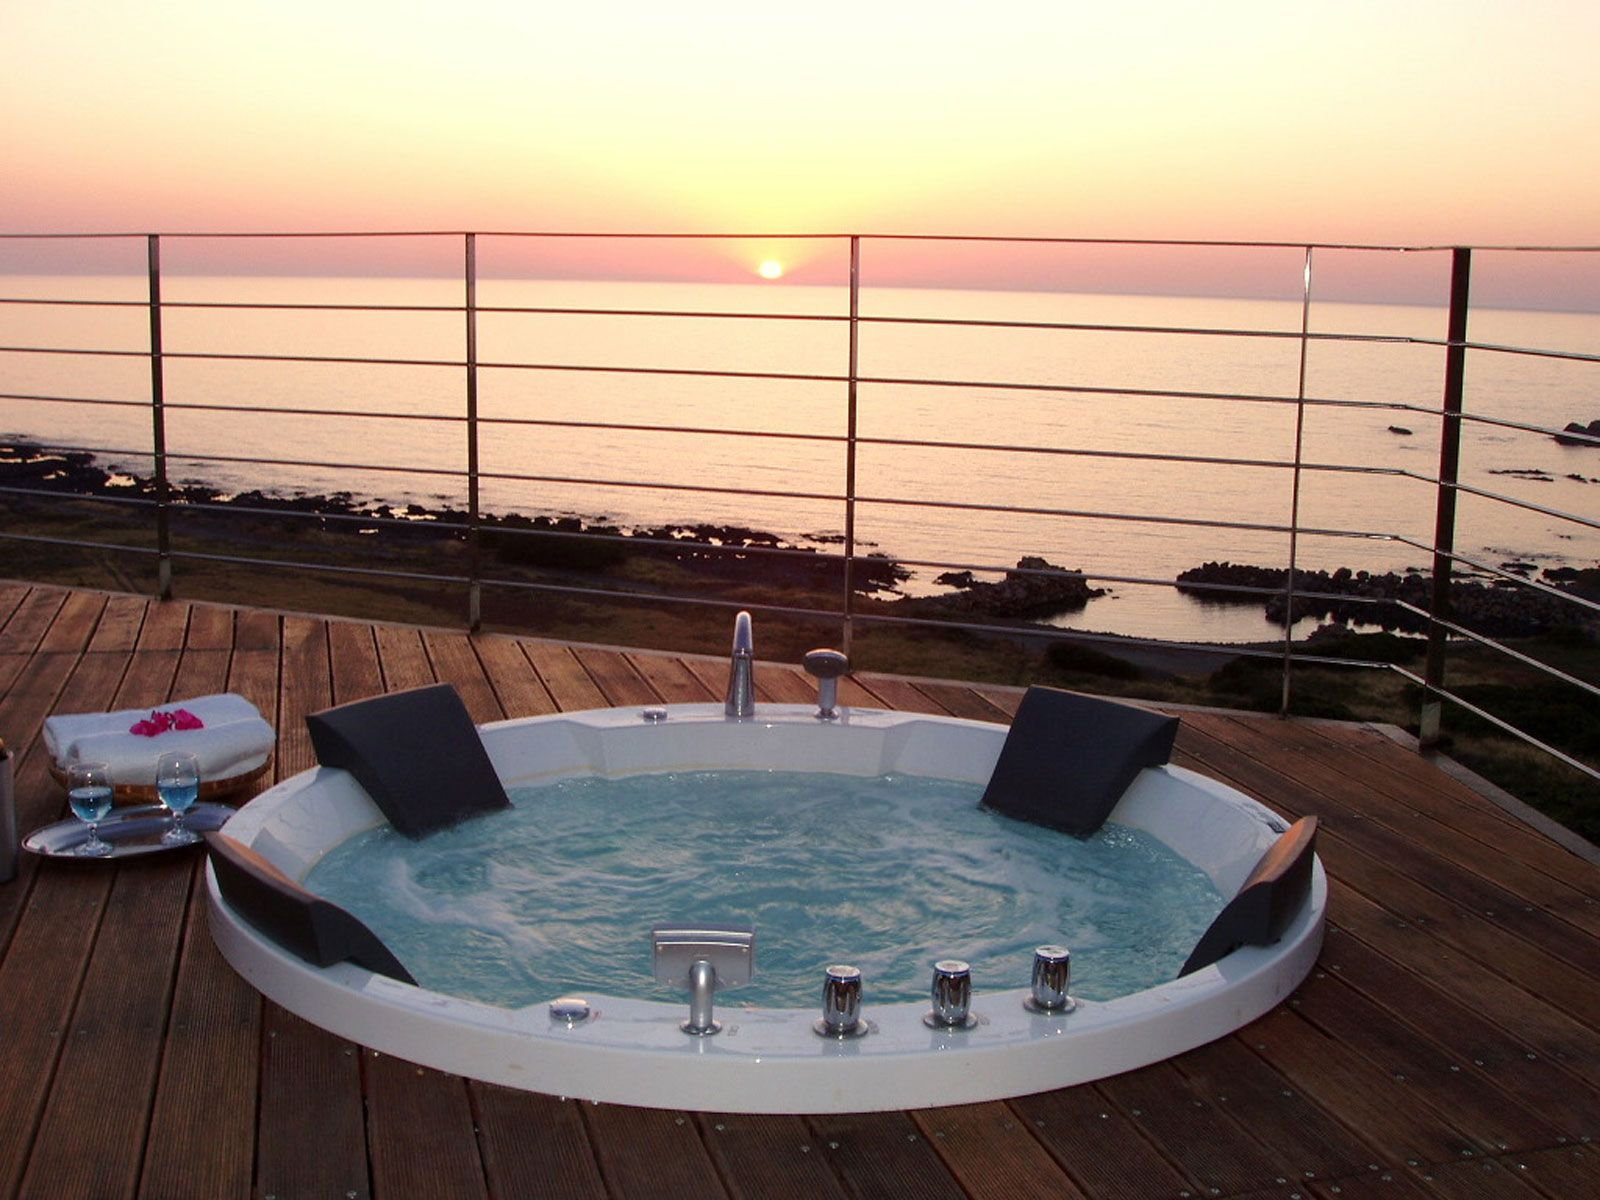 Elafonisi Villas, Villa Ostria // The Outdoor Jacuzzi Spa Overlooking The  Sun Setting Over